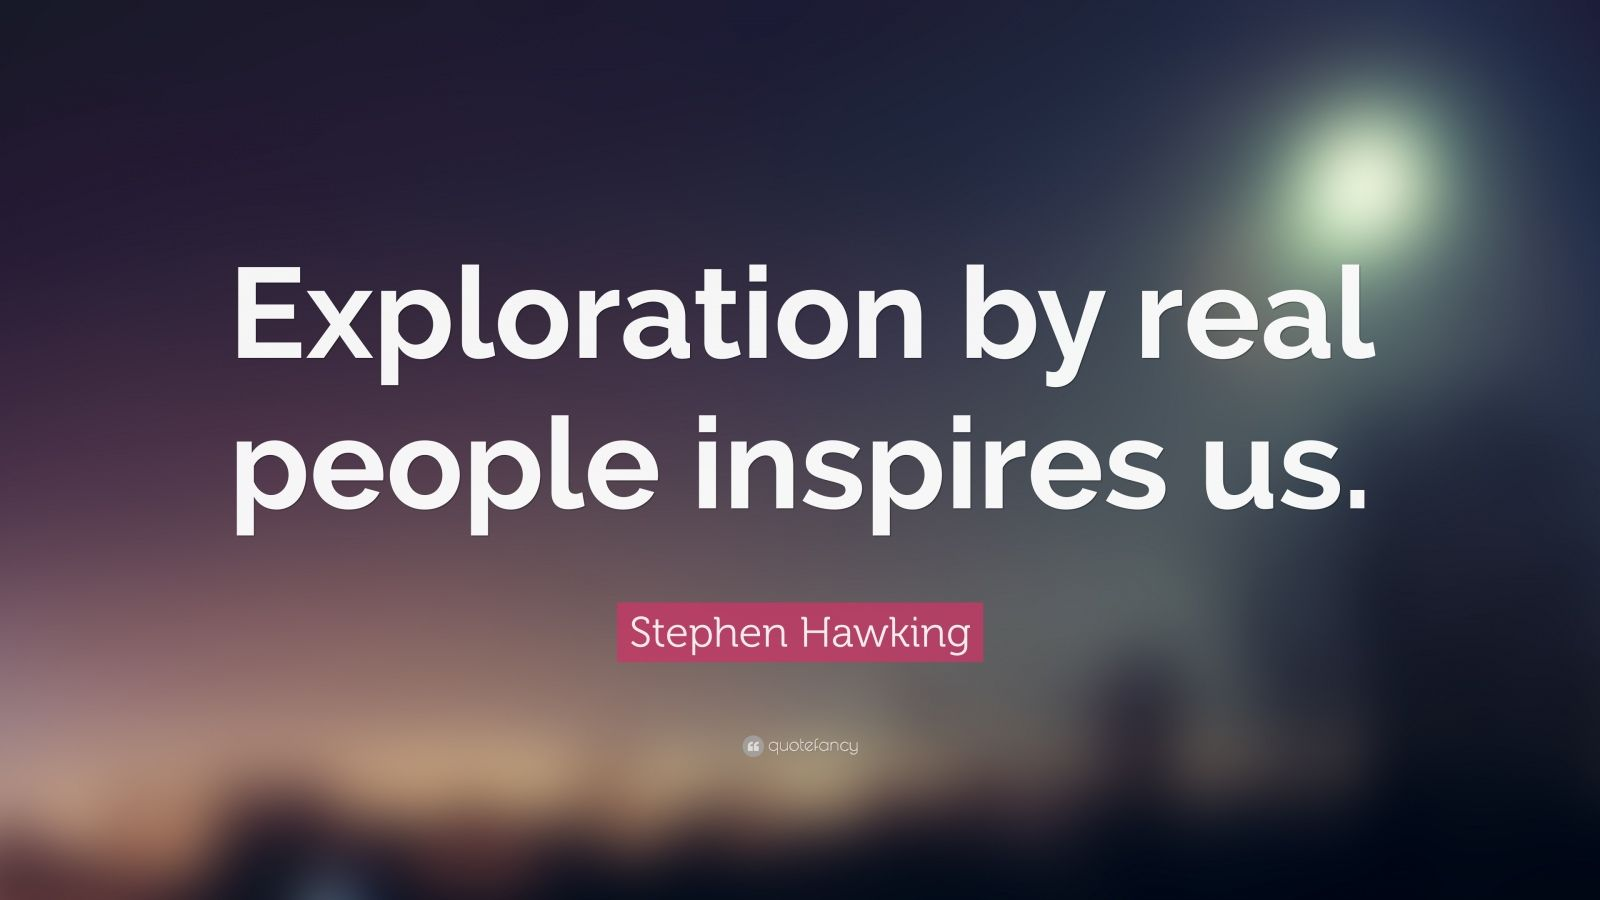 """Exploration Quotes Sayings Pictures And Images: Stephen Hawking Quote: """"Exploration By Real People"""